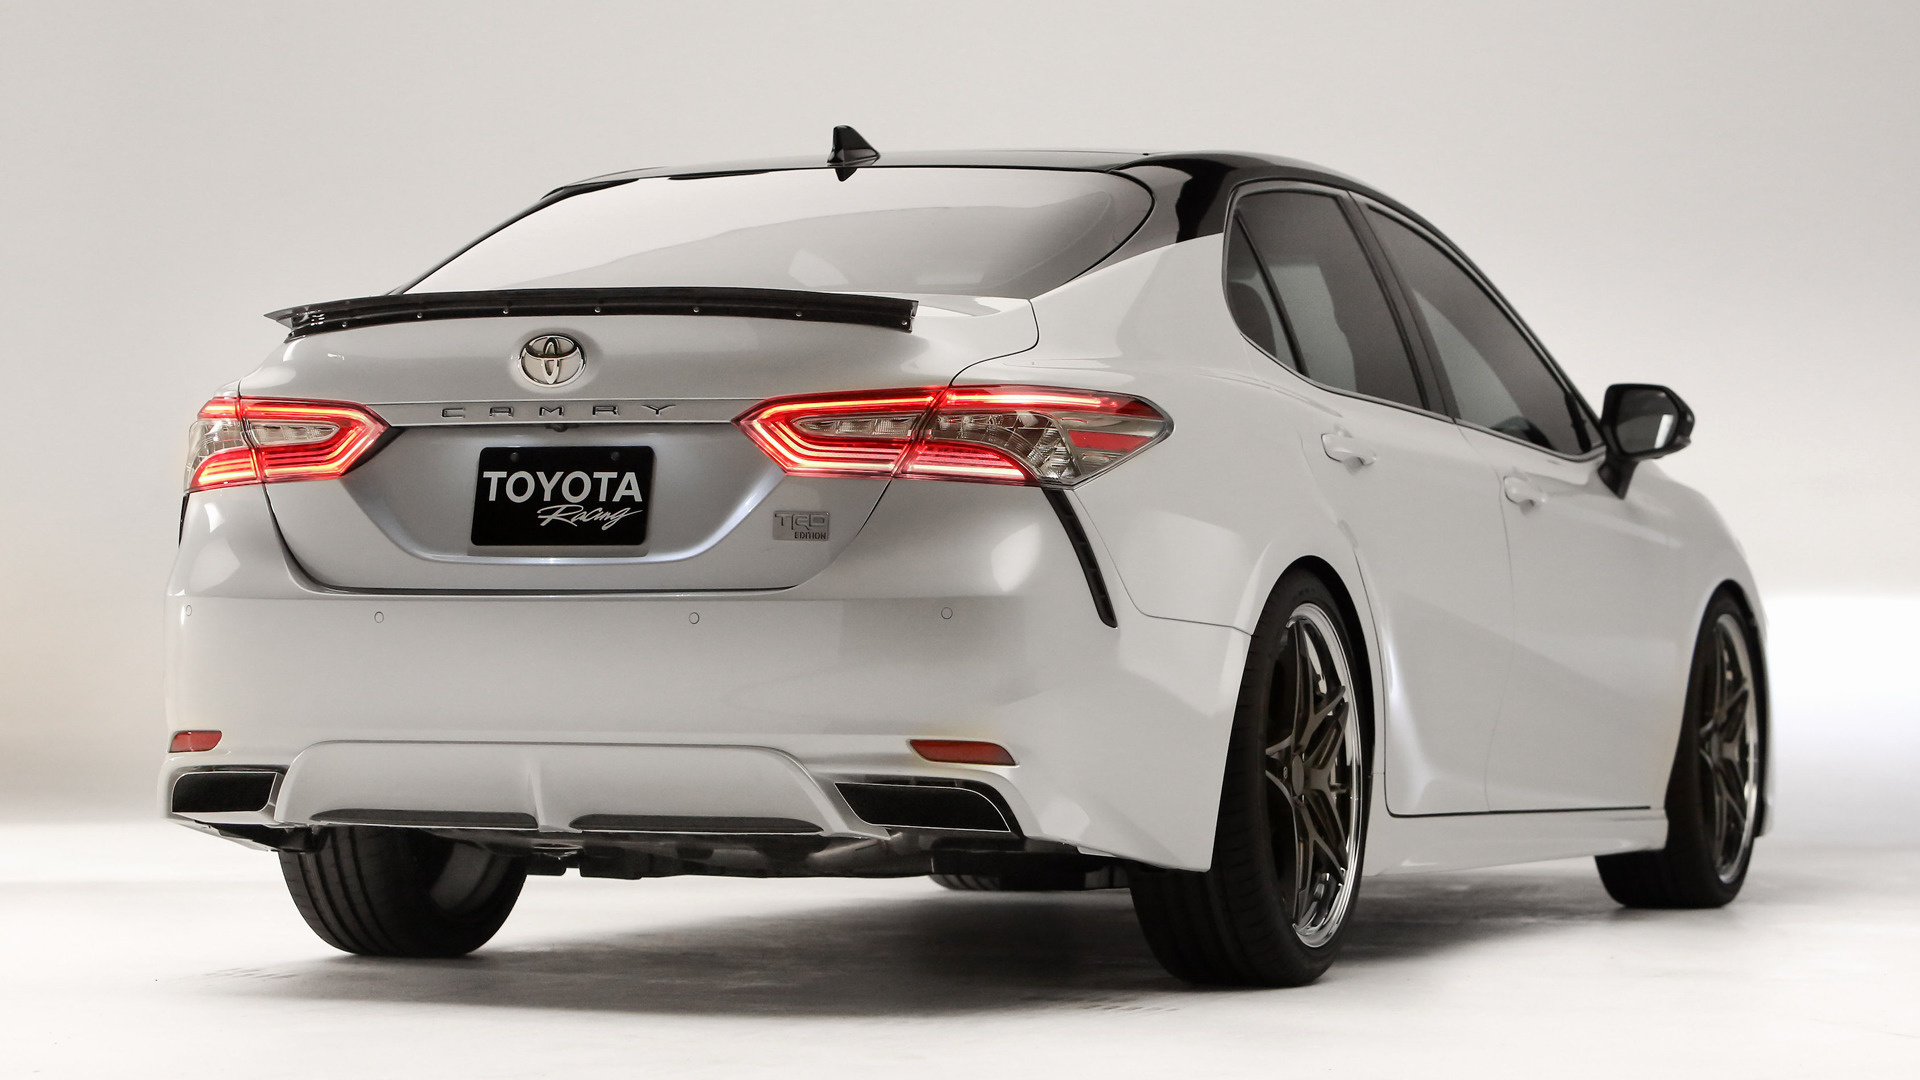 camry toyota trd edition suarez daniel hd wallpapers cars background race vehicles